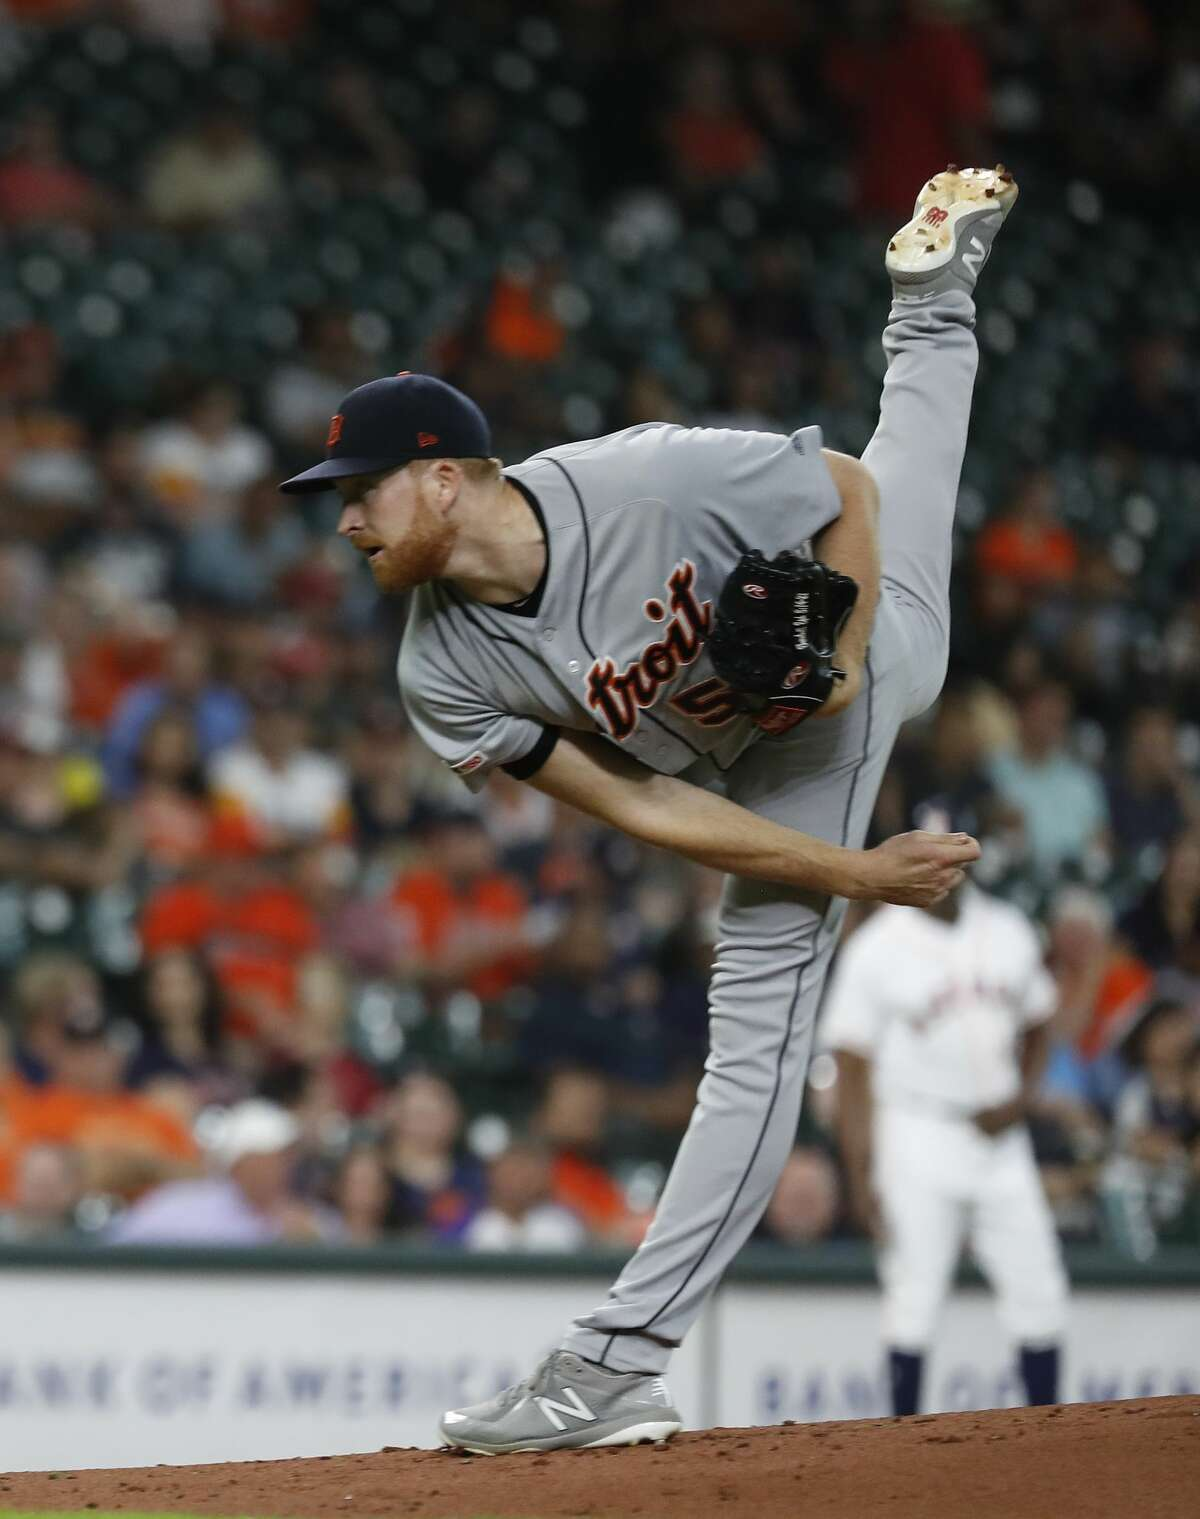 Detroit Tigers starting pitcher Spencer Turnbull (56) pitches during the first inning of an MLB game at Minute Maid Park, Tuesday, August 20, 2019.